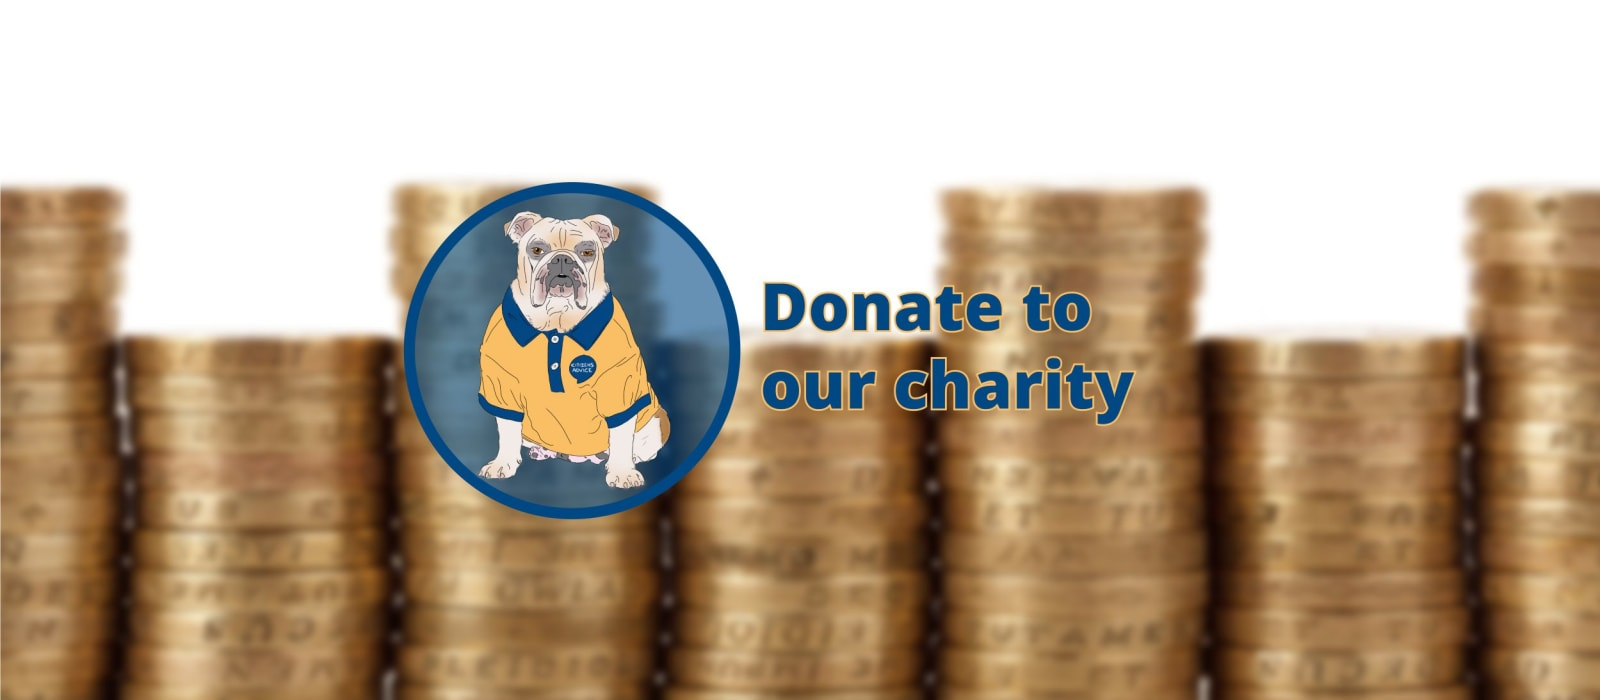 Donate To Citizens Advice Isle of Wight